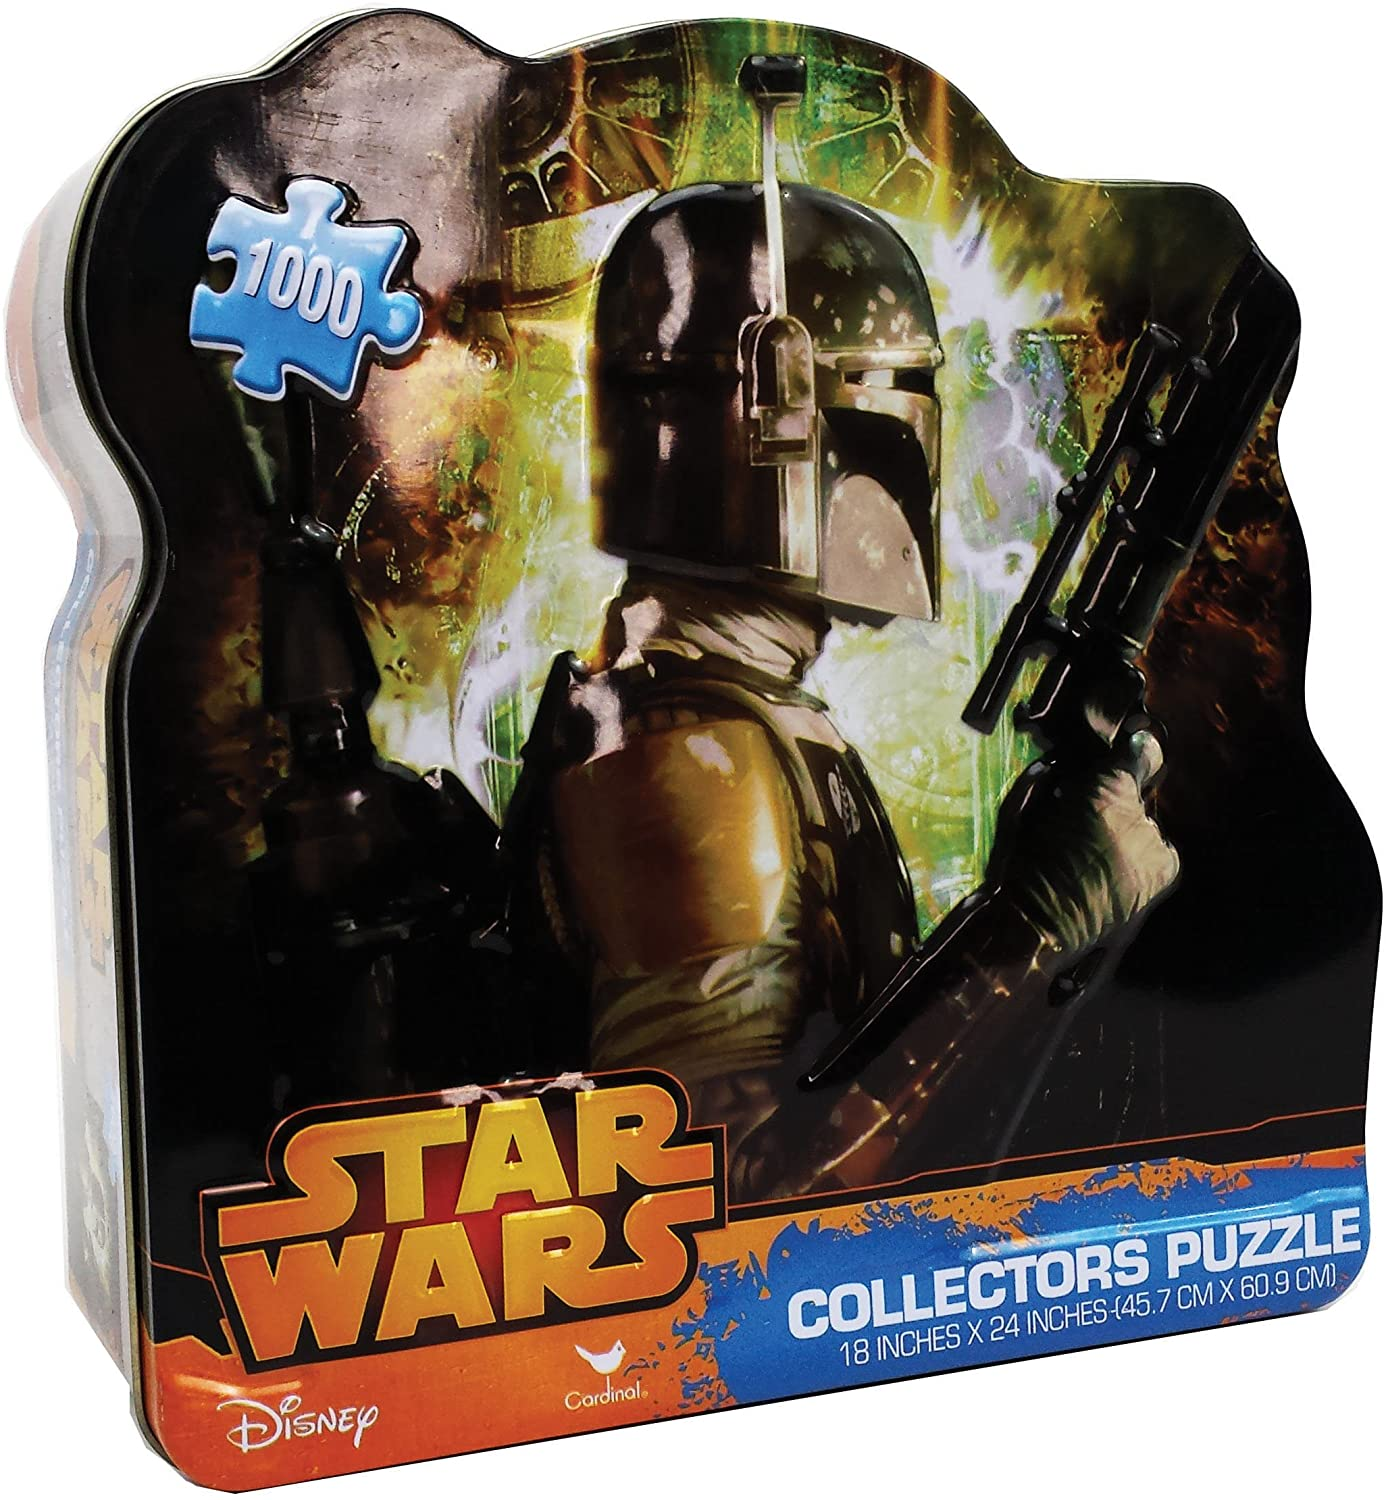 Star Wars Classic-Boba Fett Puzzle (1000 Piece)